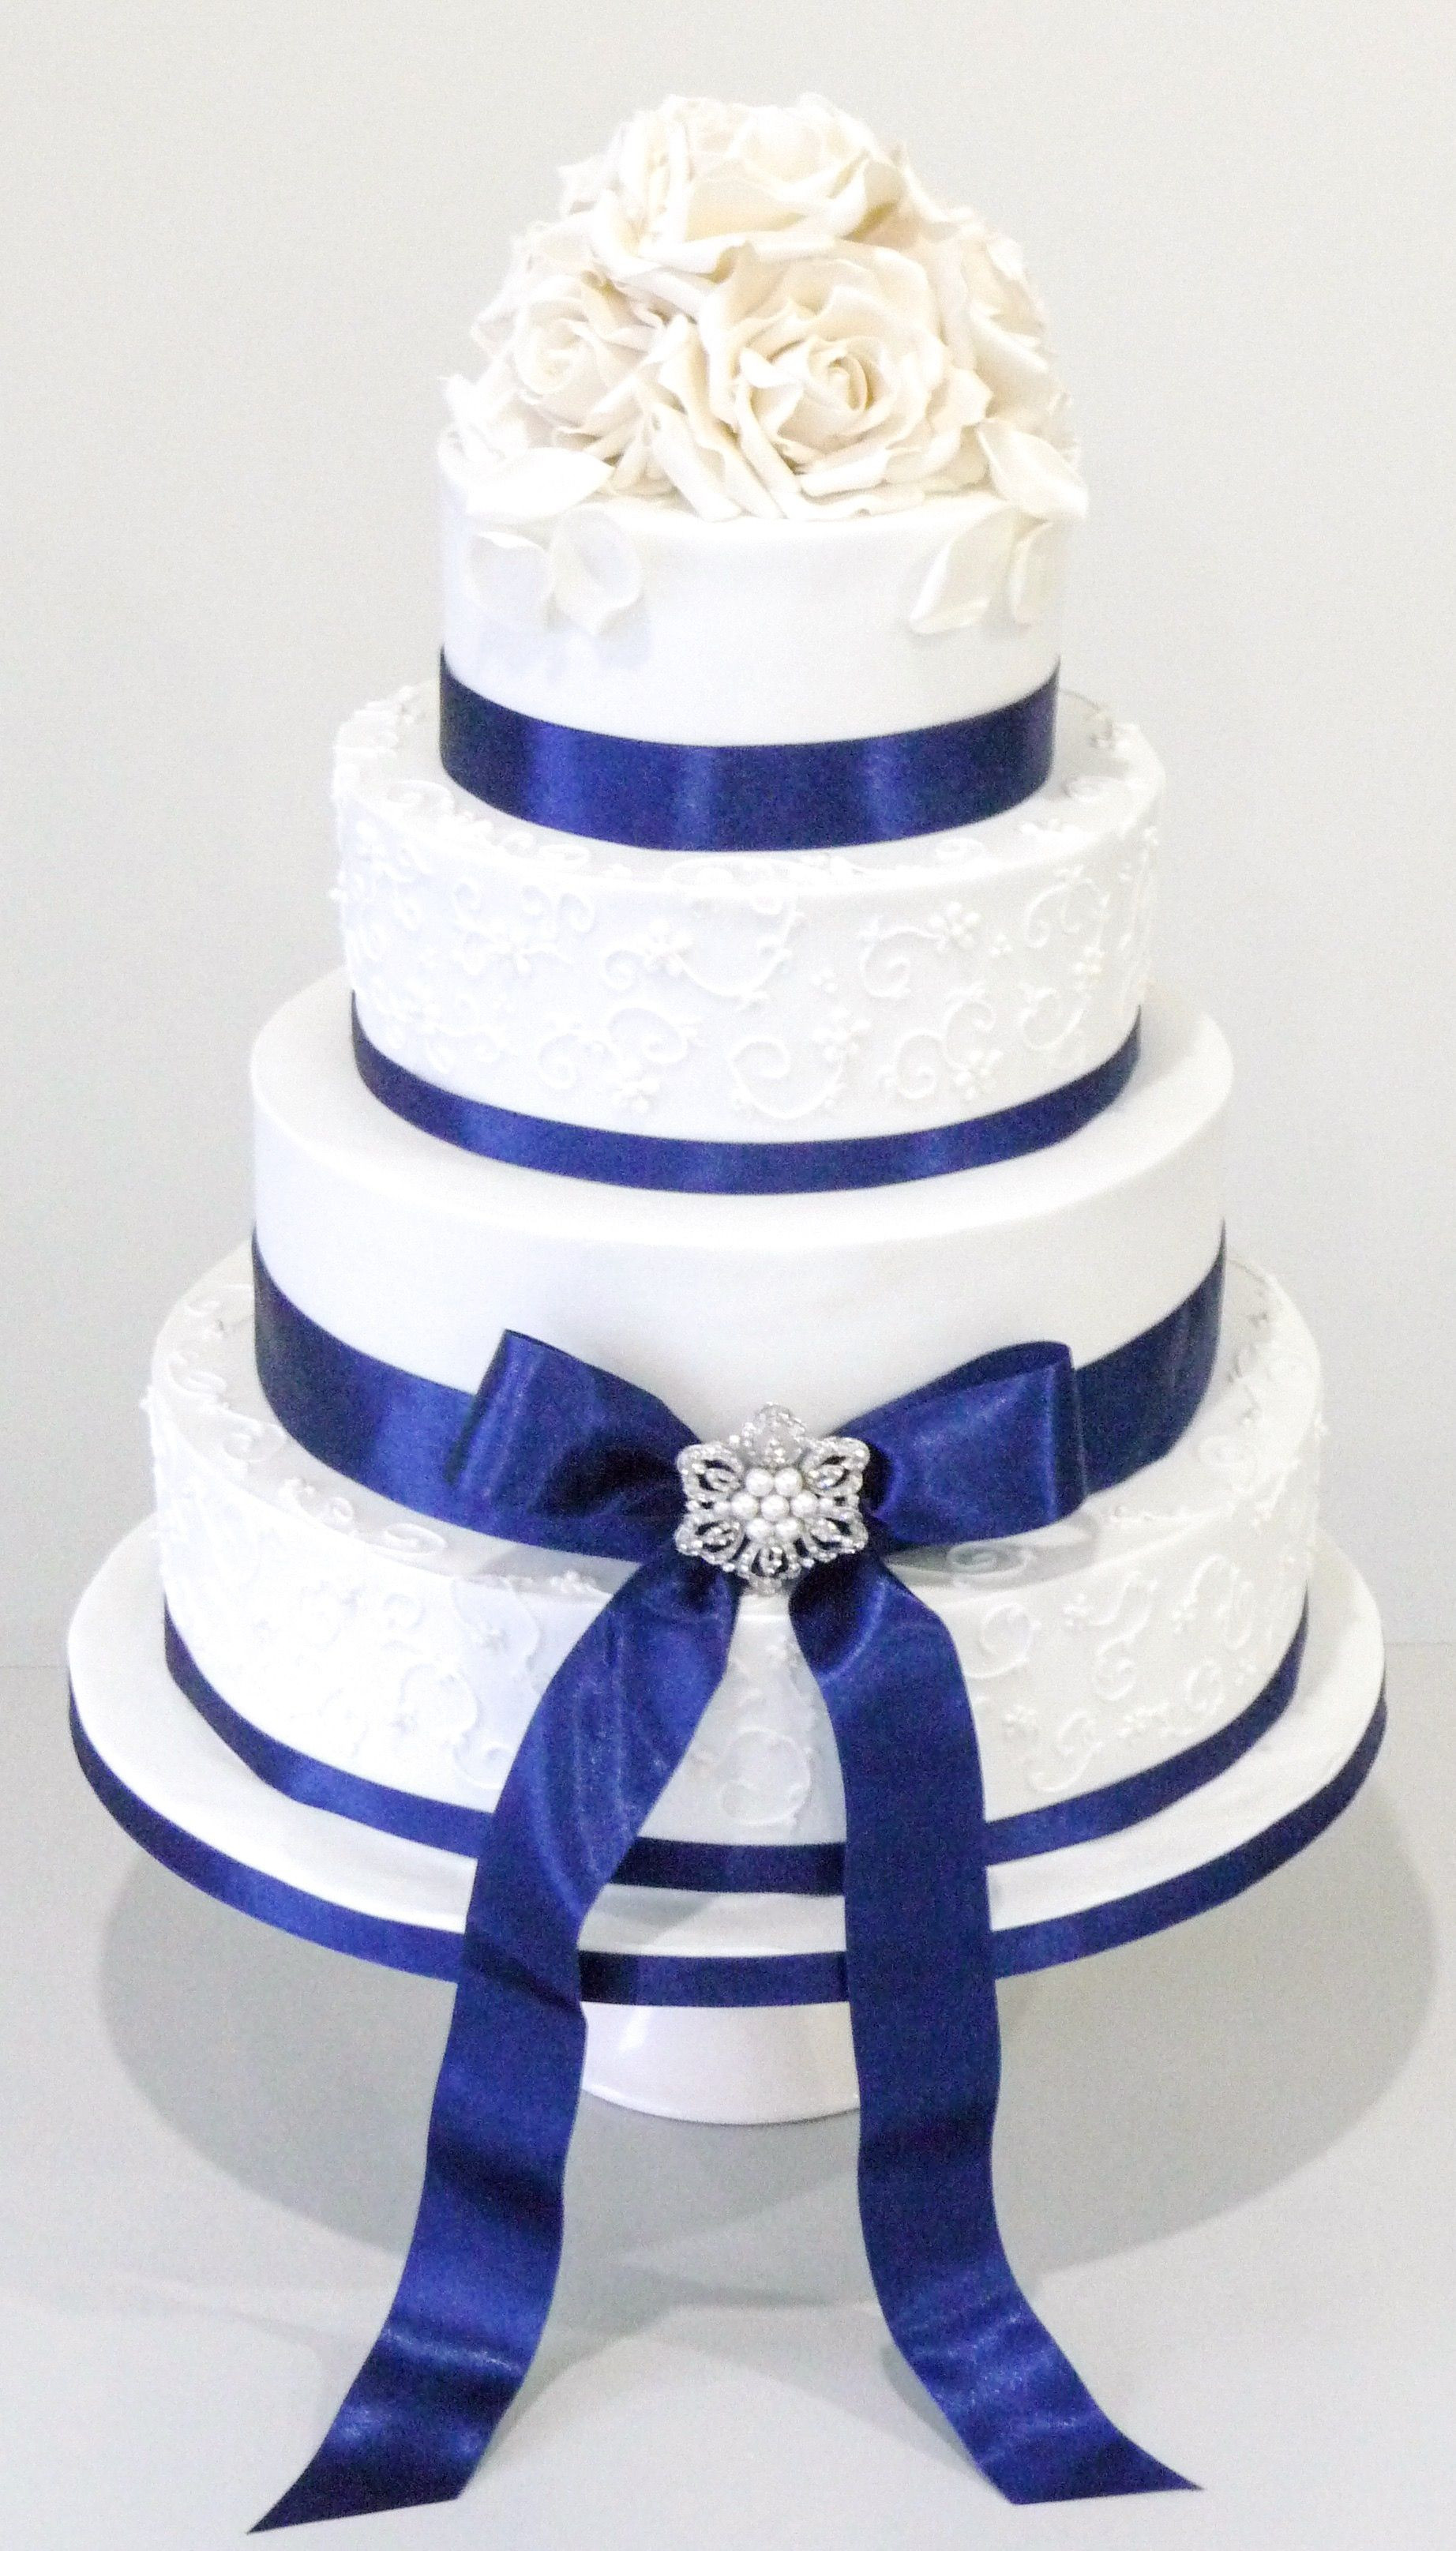 Wedding Cakes With Ribbons  White sugar flowers on this 4 tier wedding cake with Royal